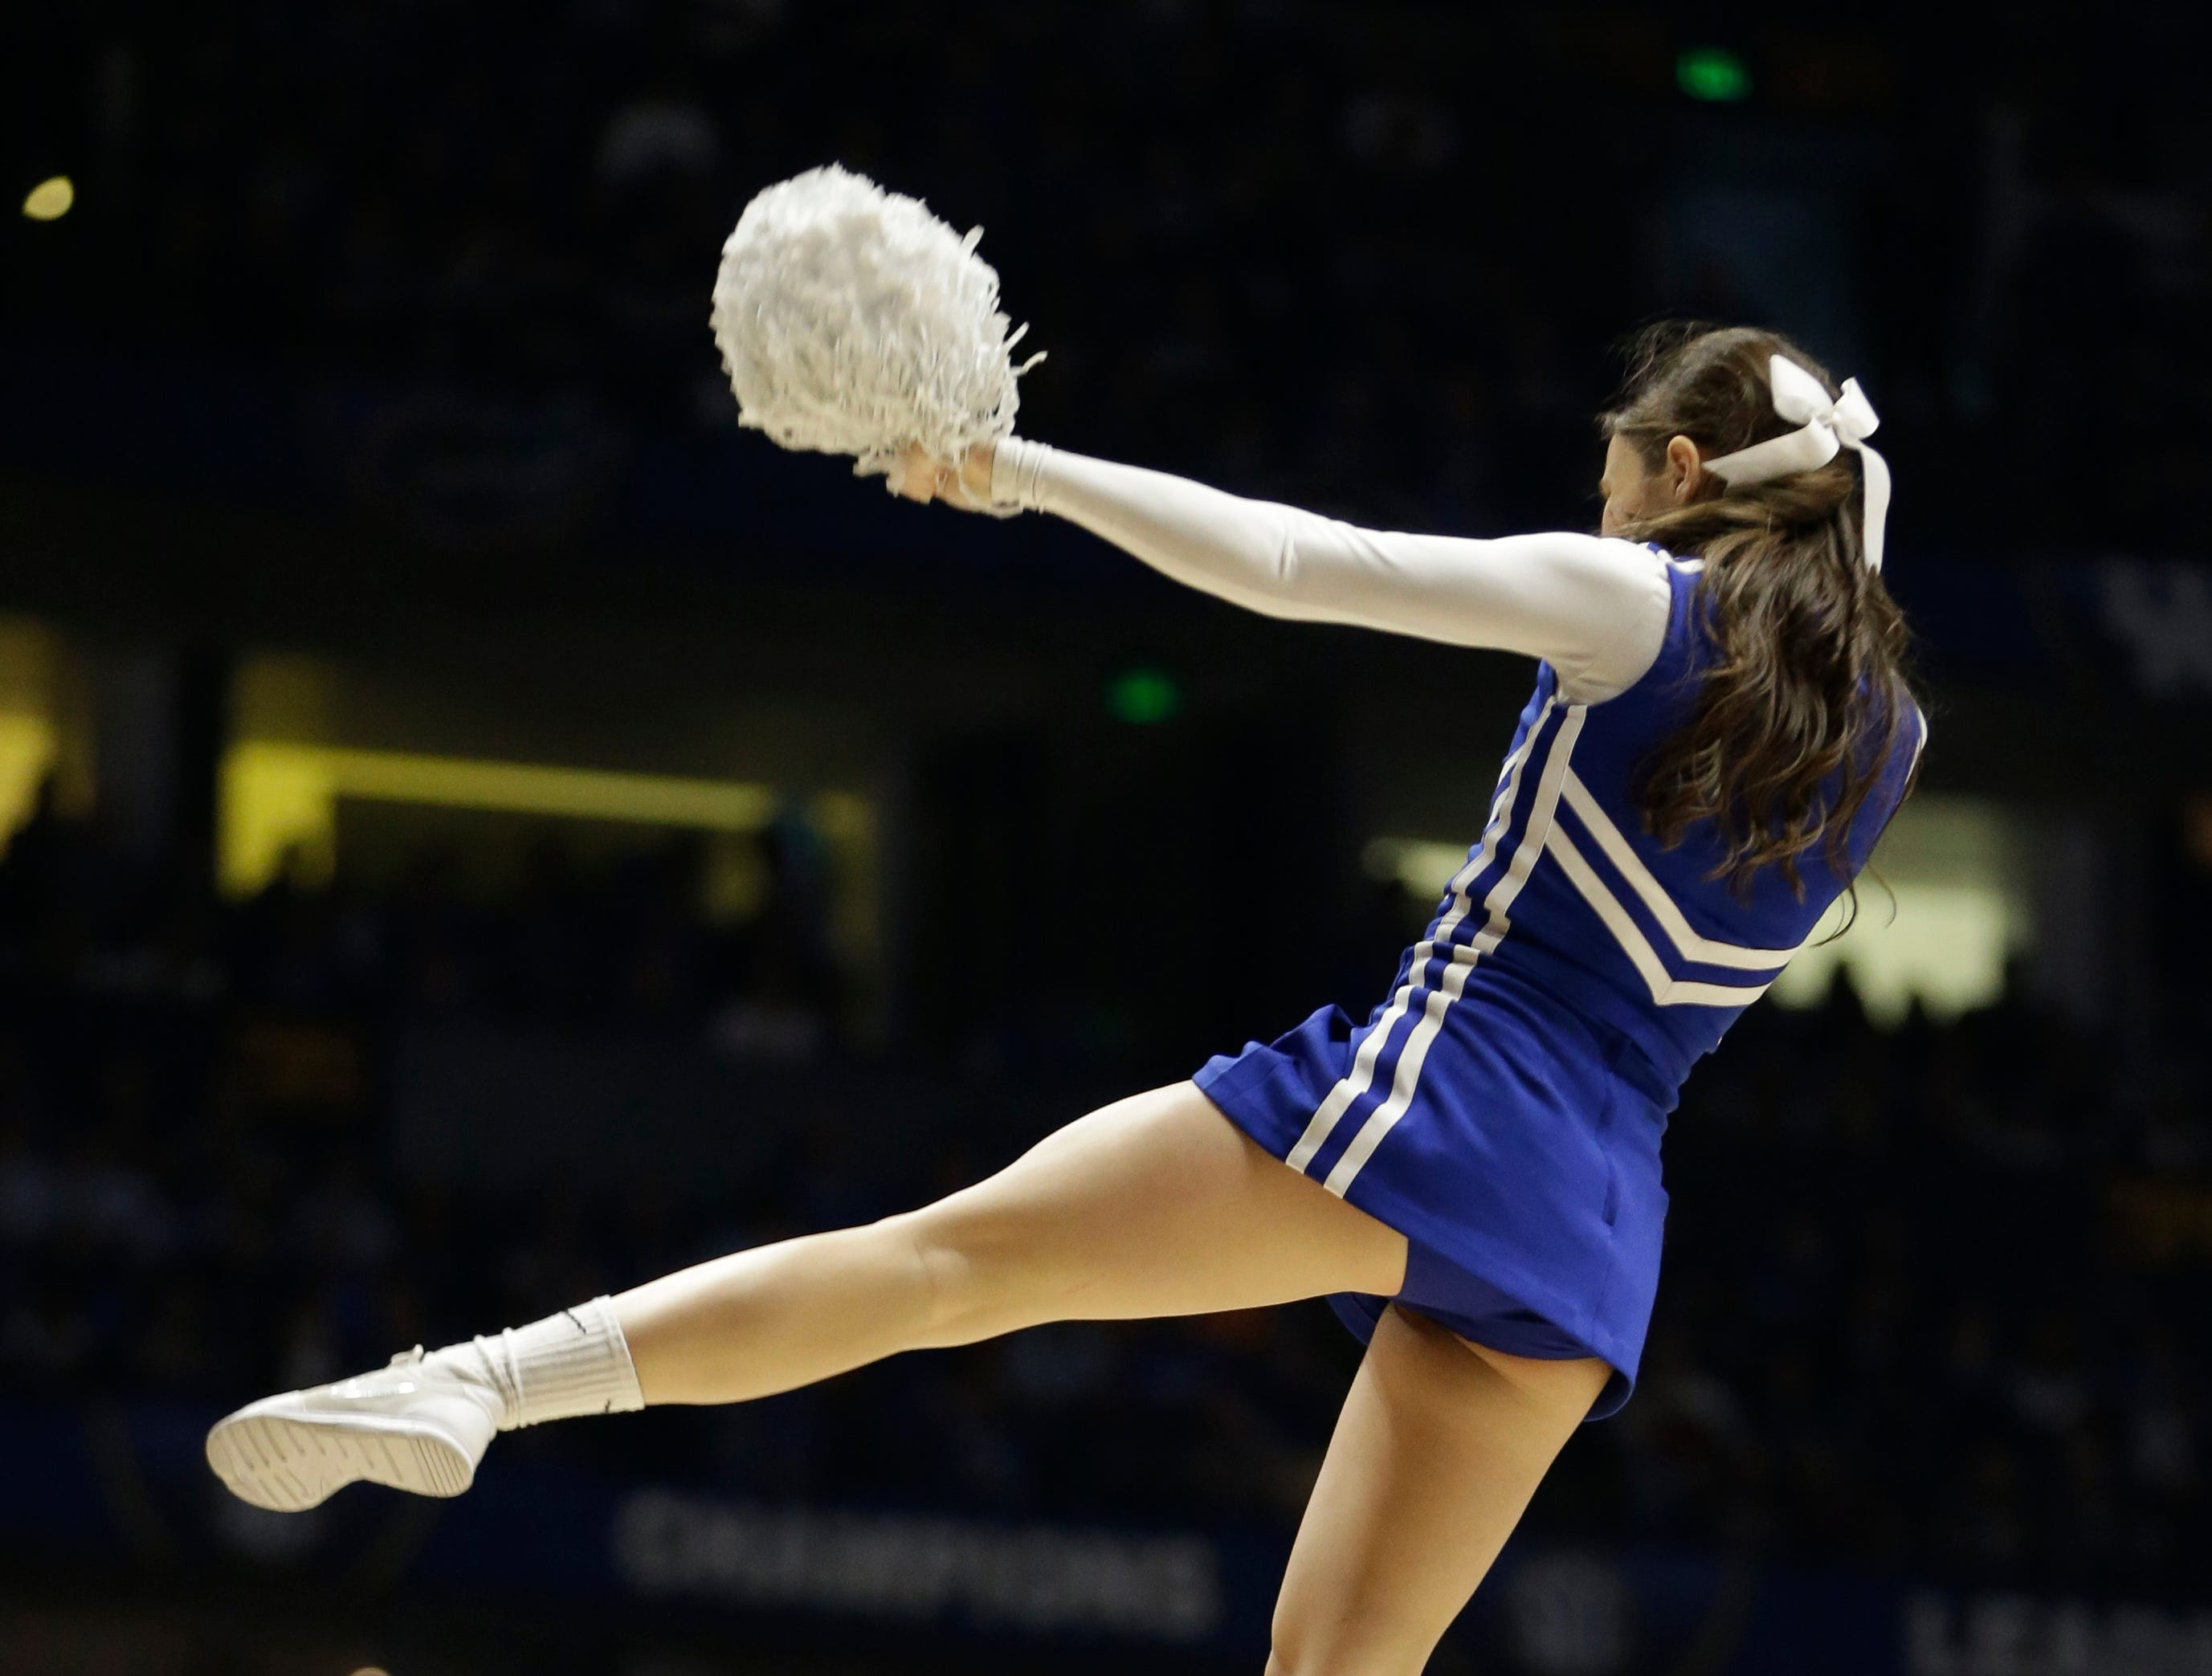 Kentucky cheerleaders perform during the first half of an NCAA college basketball game against Texas A&M in the championship of the Southeastern Conference tournament in Nashville, Tenn., Sunday, March 13, 2016. (AP Photo/Mark Humphrey)